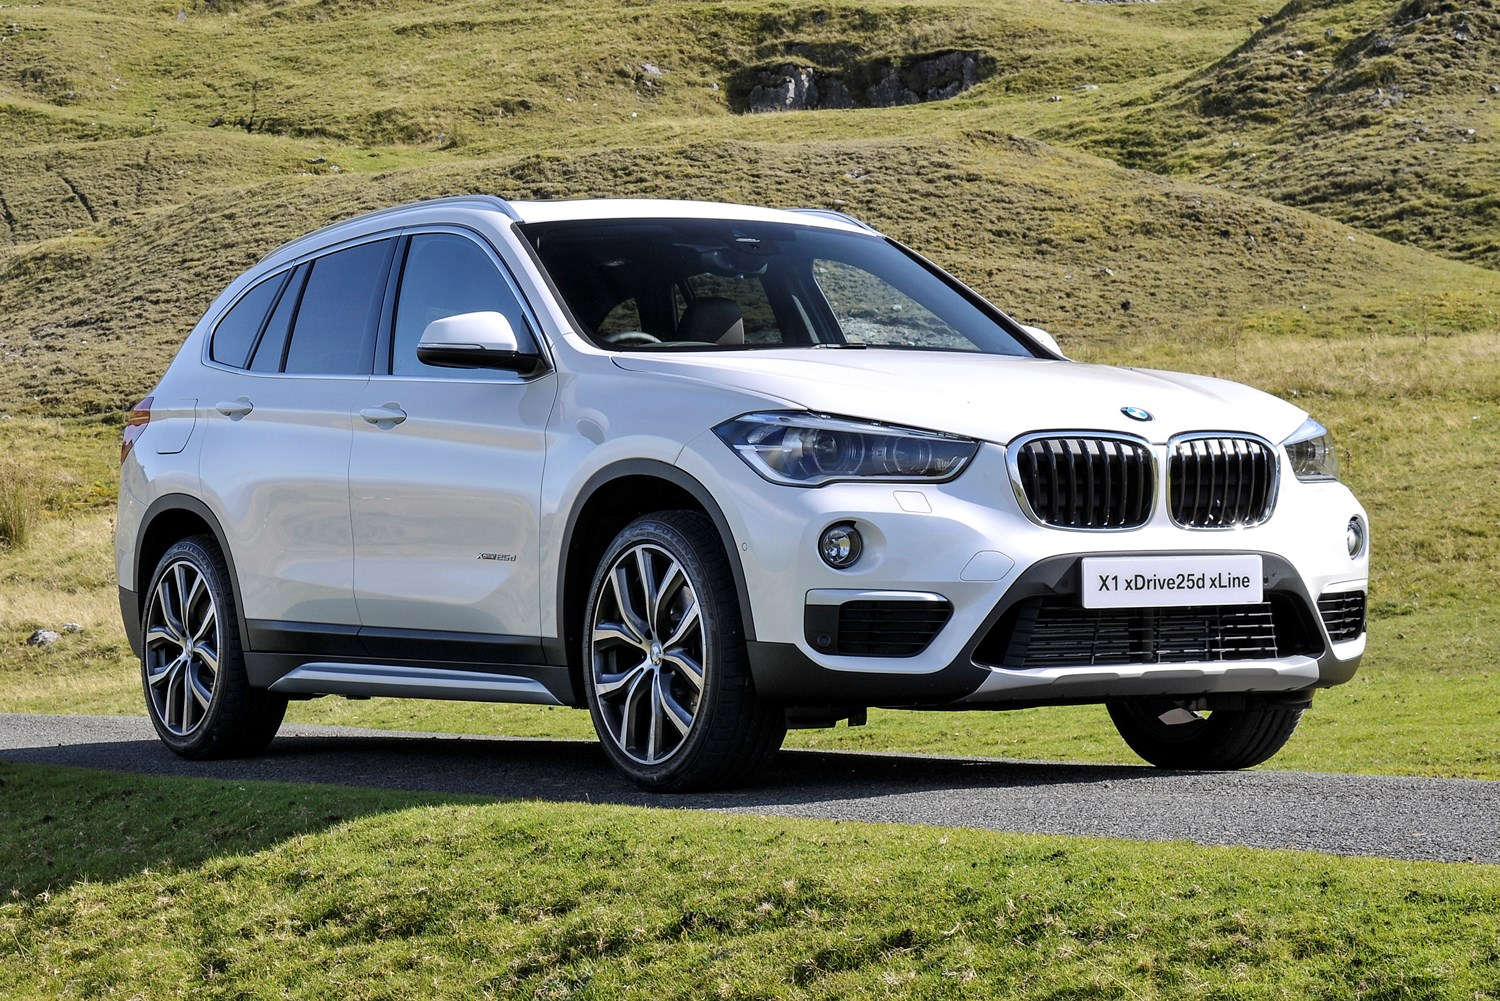 bmw x1 suv review summary parkers. Black Bedroom Furniture Sets. Home Design Ideas